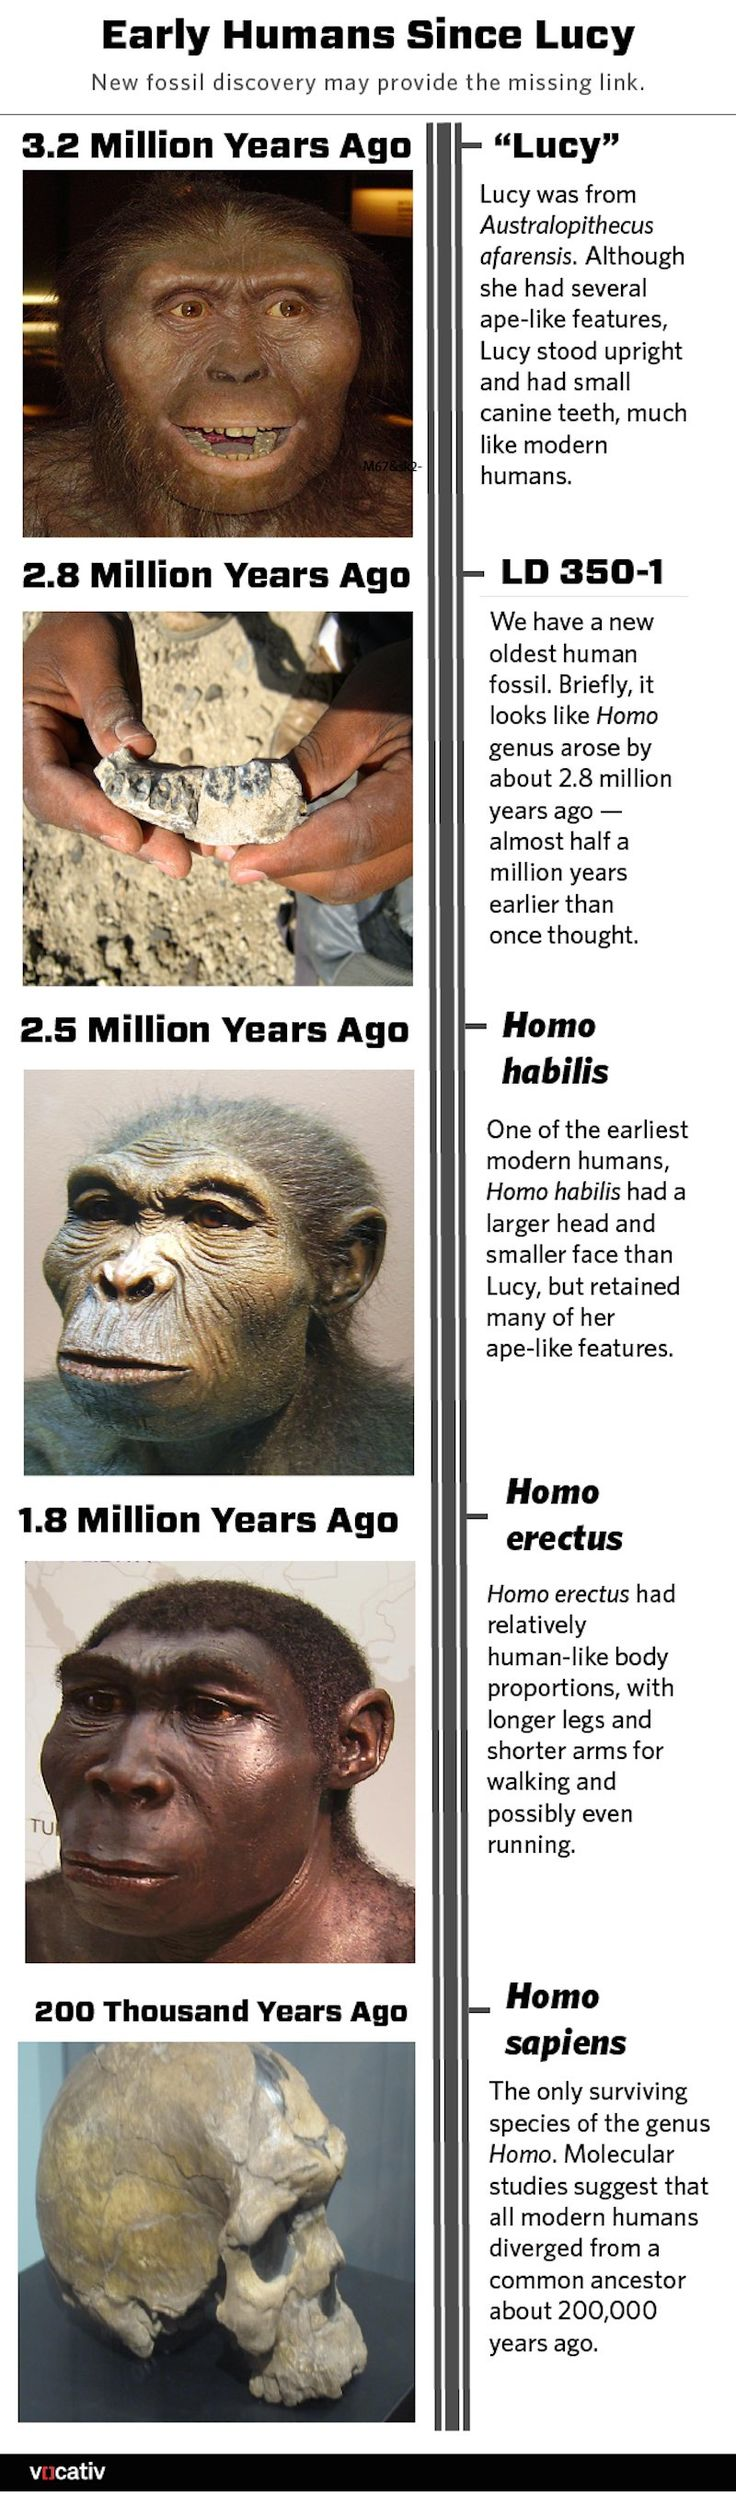 Early Humans Since Lucy